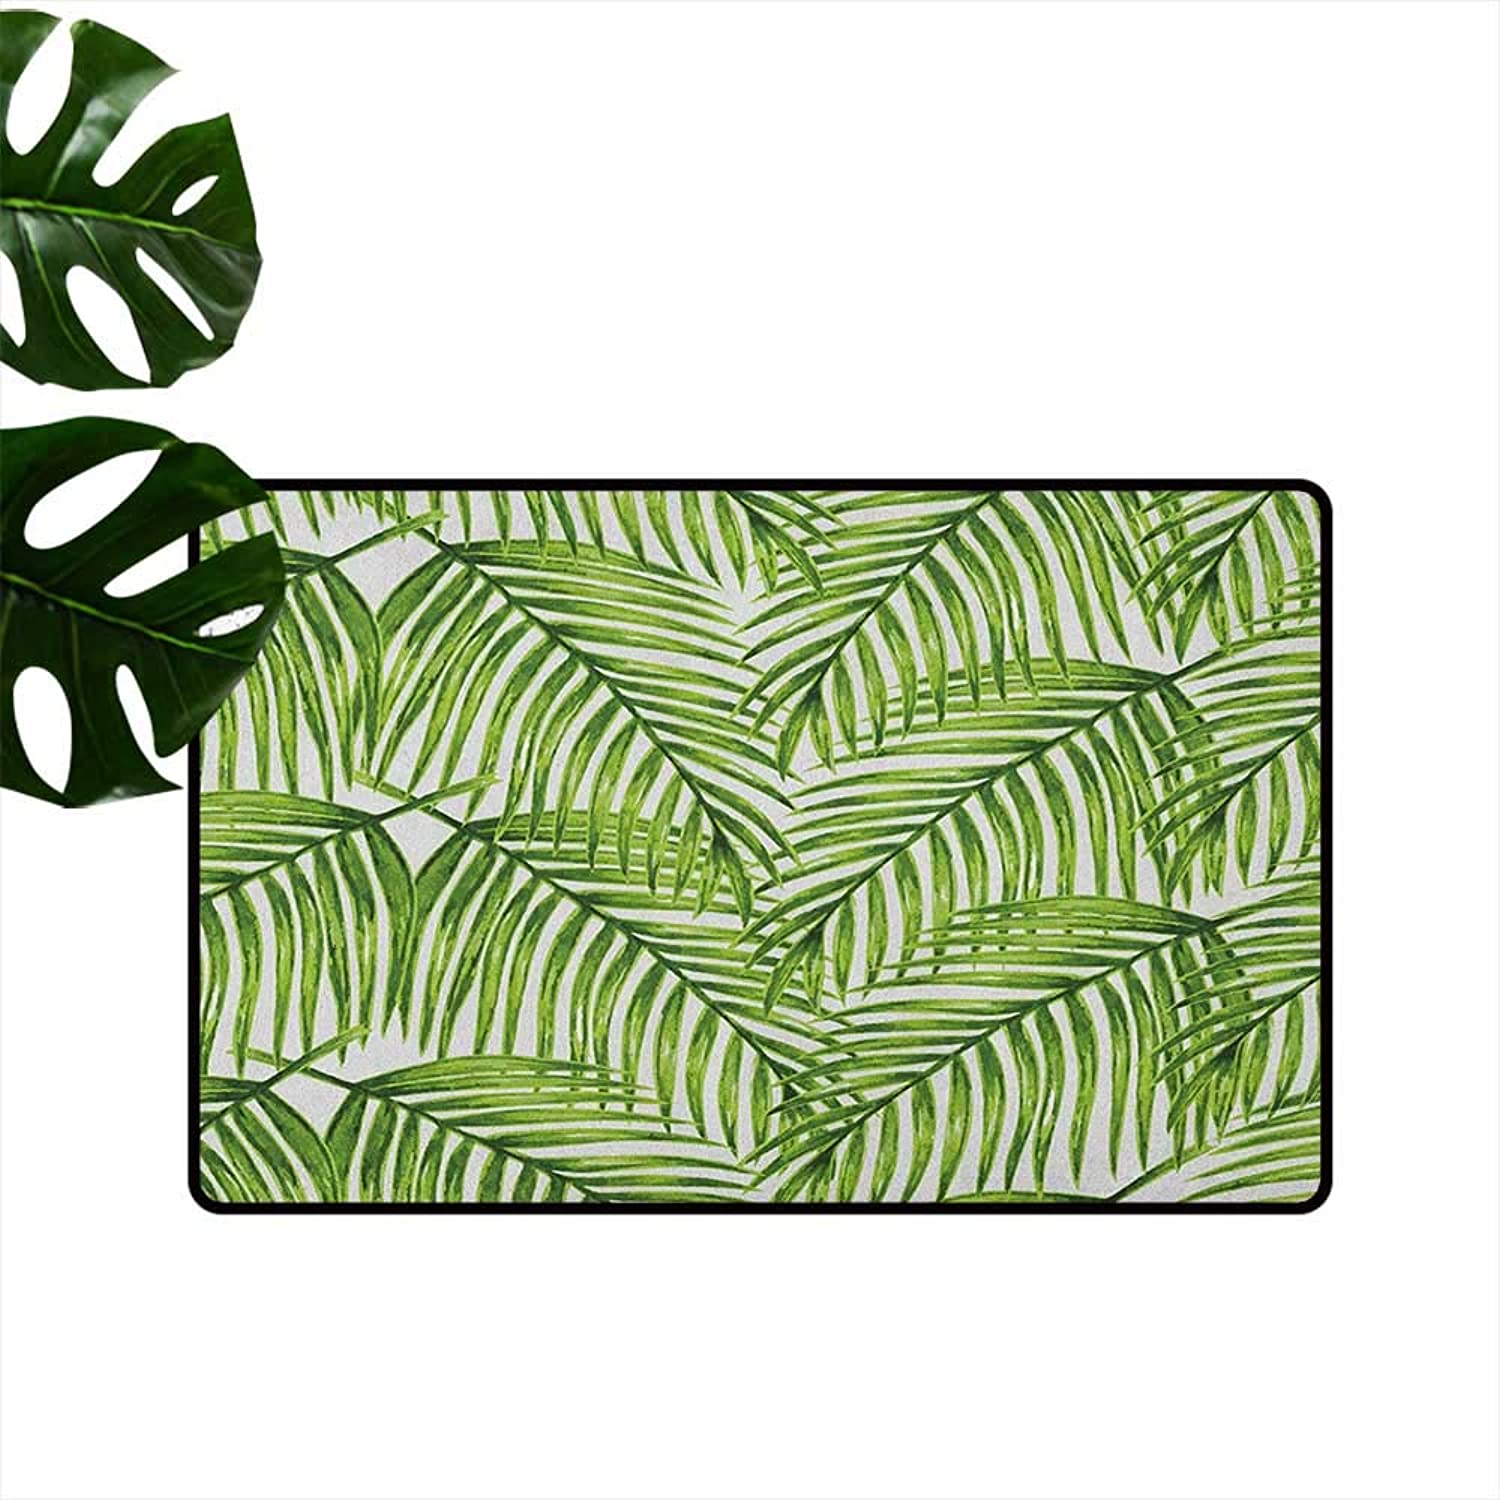 Plant Printed Door mat Fascinating Leaves on Branches Exotic Setting Floral Arrangement Jungle Themed Greens Quick and Easy to Clean W35 x L59 Fern Green